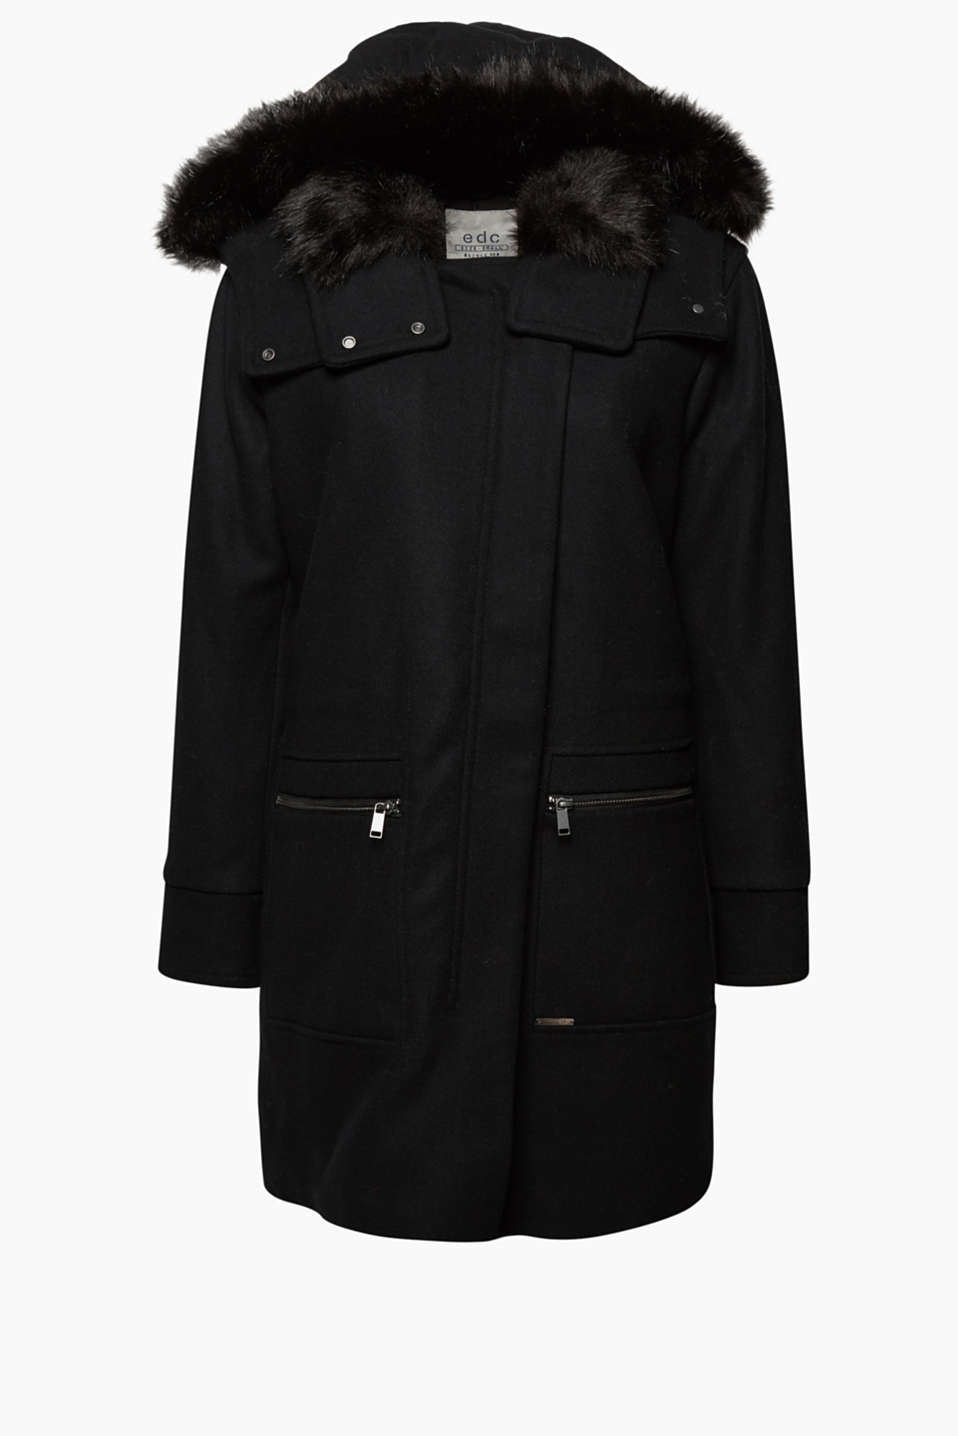 Enhanced with soft faux fur and wool: stylish parka in padded worsted material.